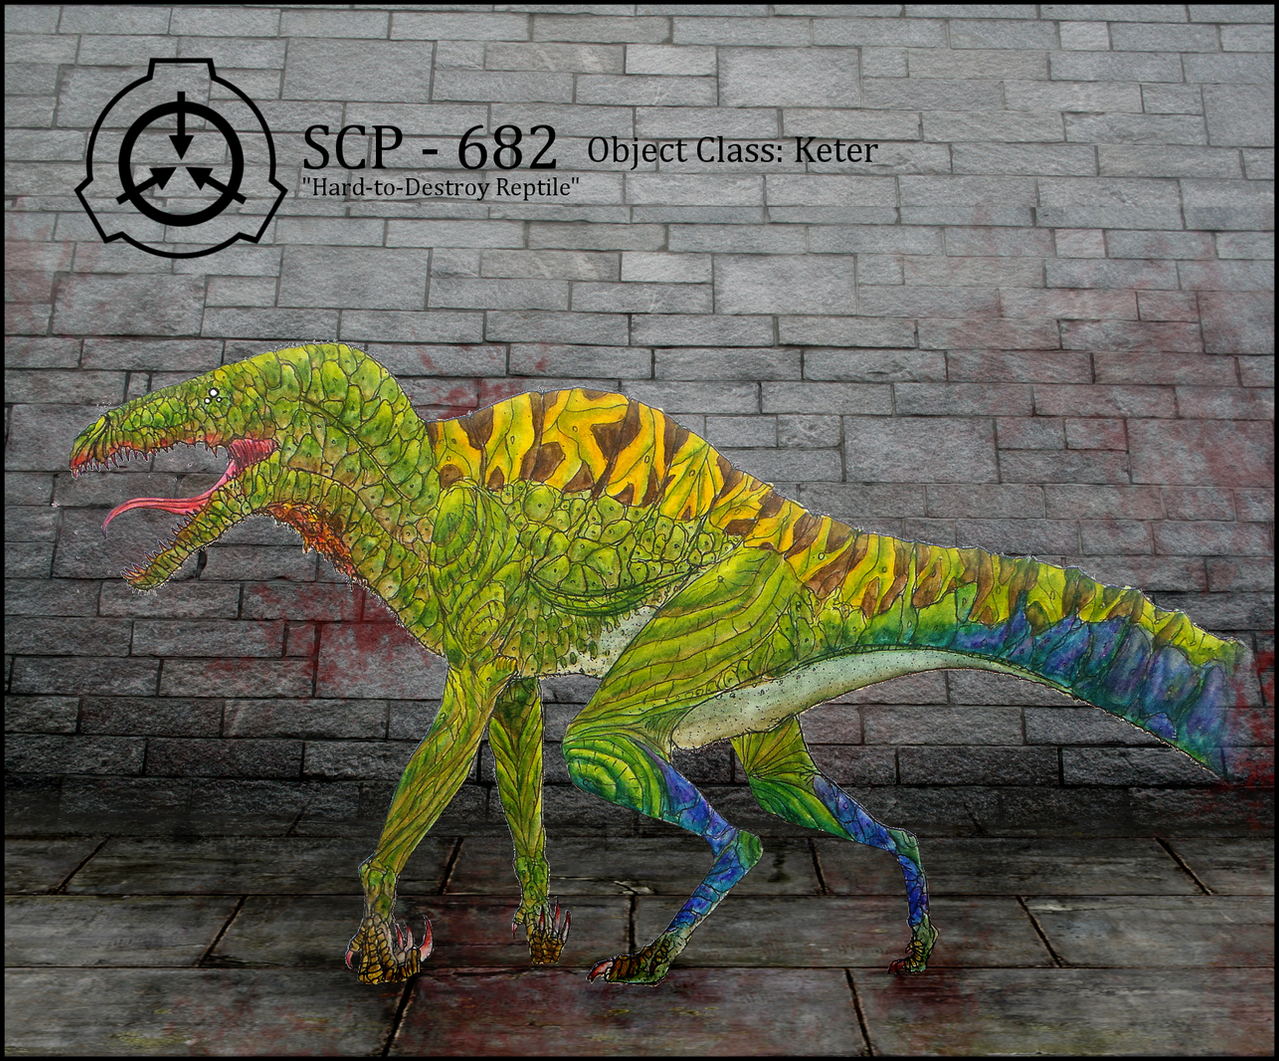 Compter en image - Page 30 Scp_682_by_articzephyr-d5o320q